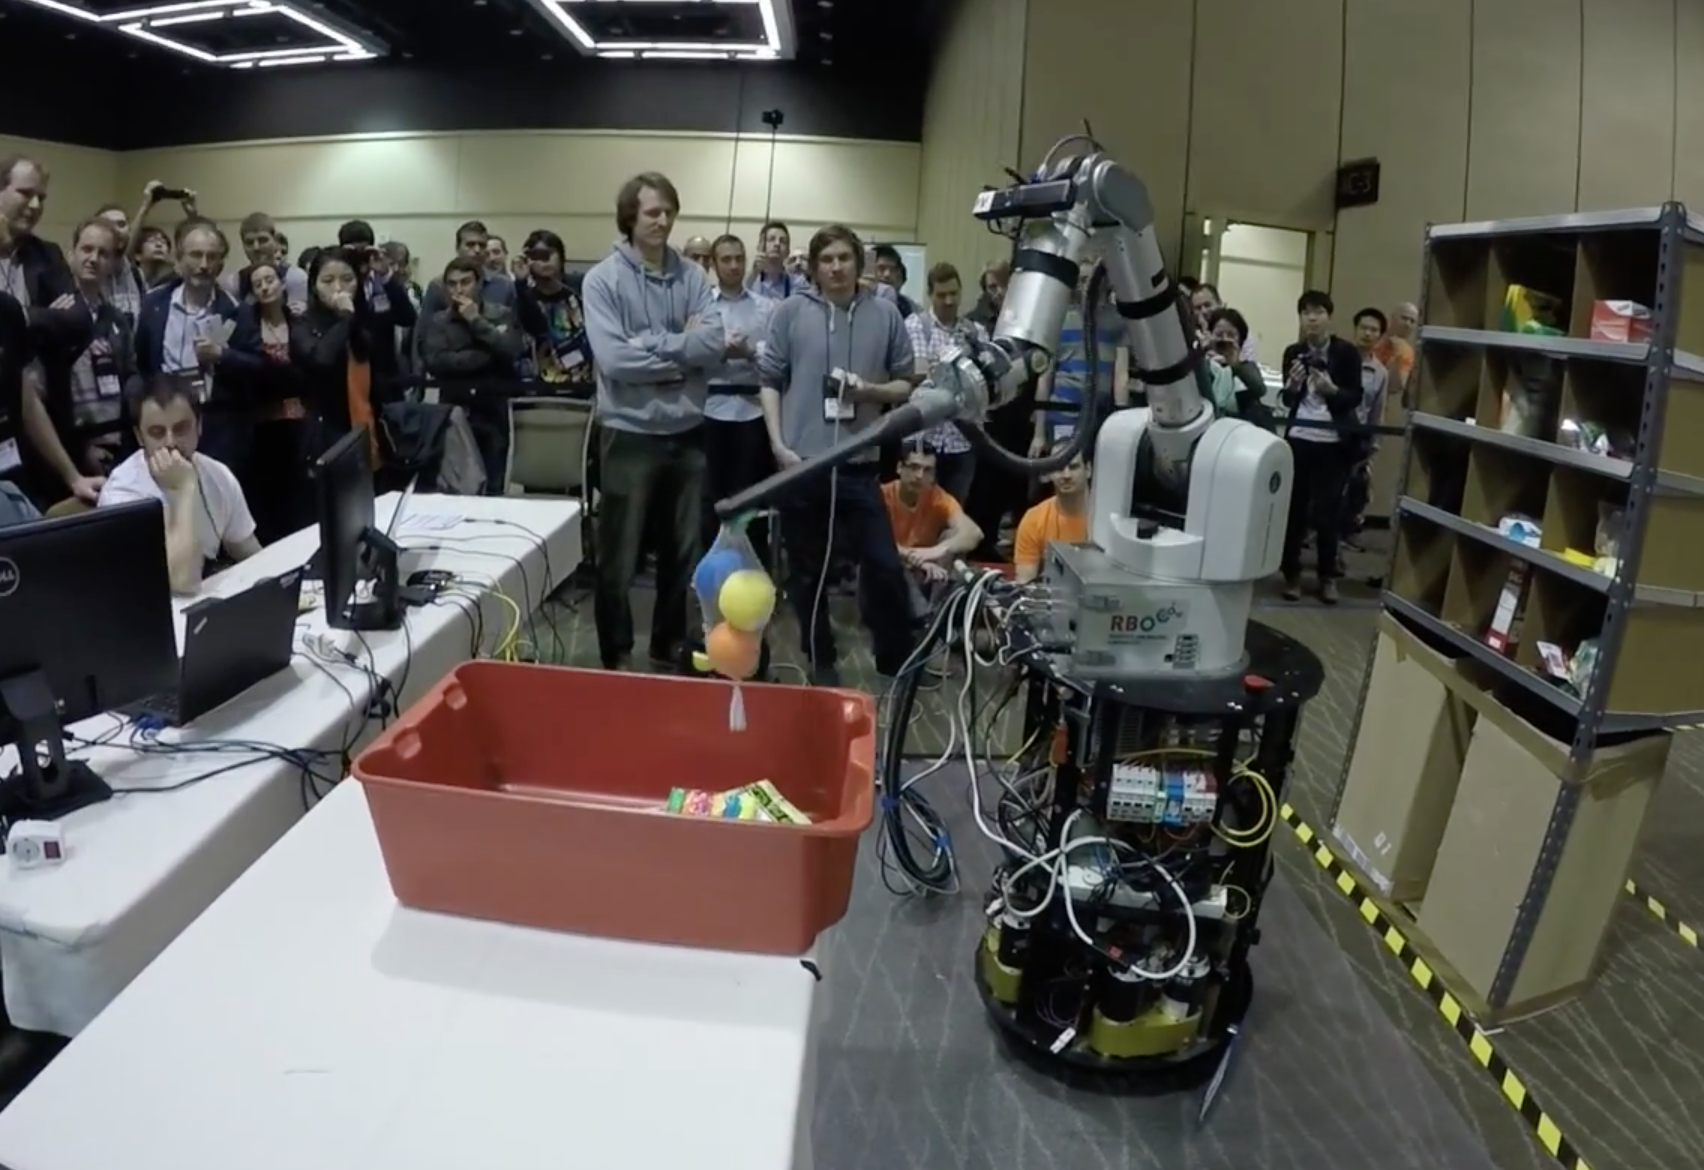 ca00bd265 Amazon s robot competition shows why human warehouse jobs are safe for now  - The Verge